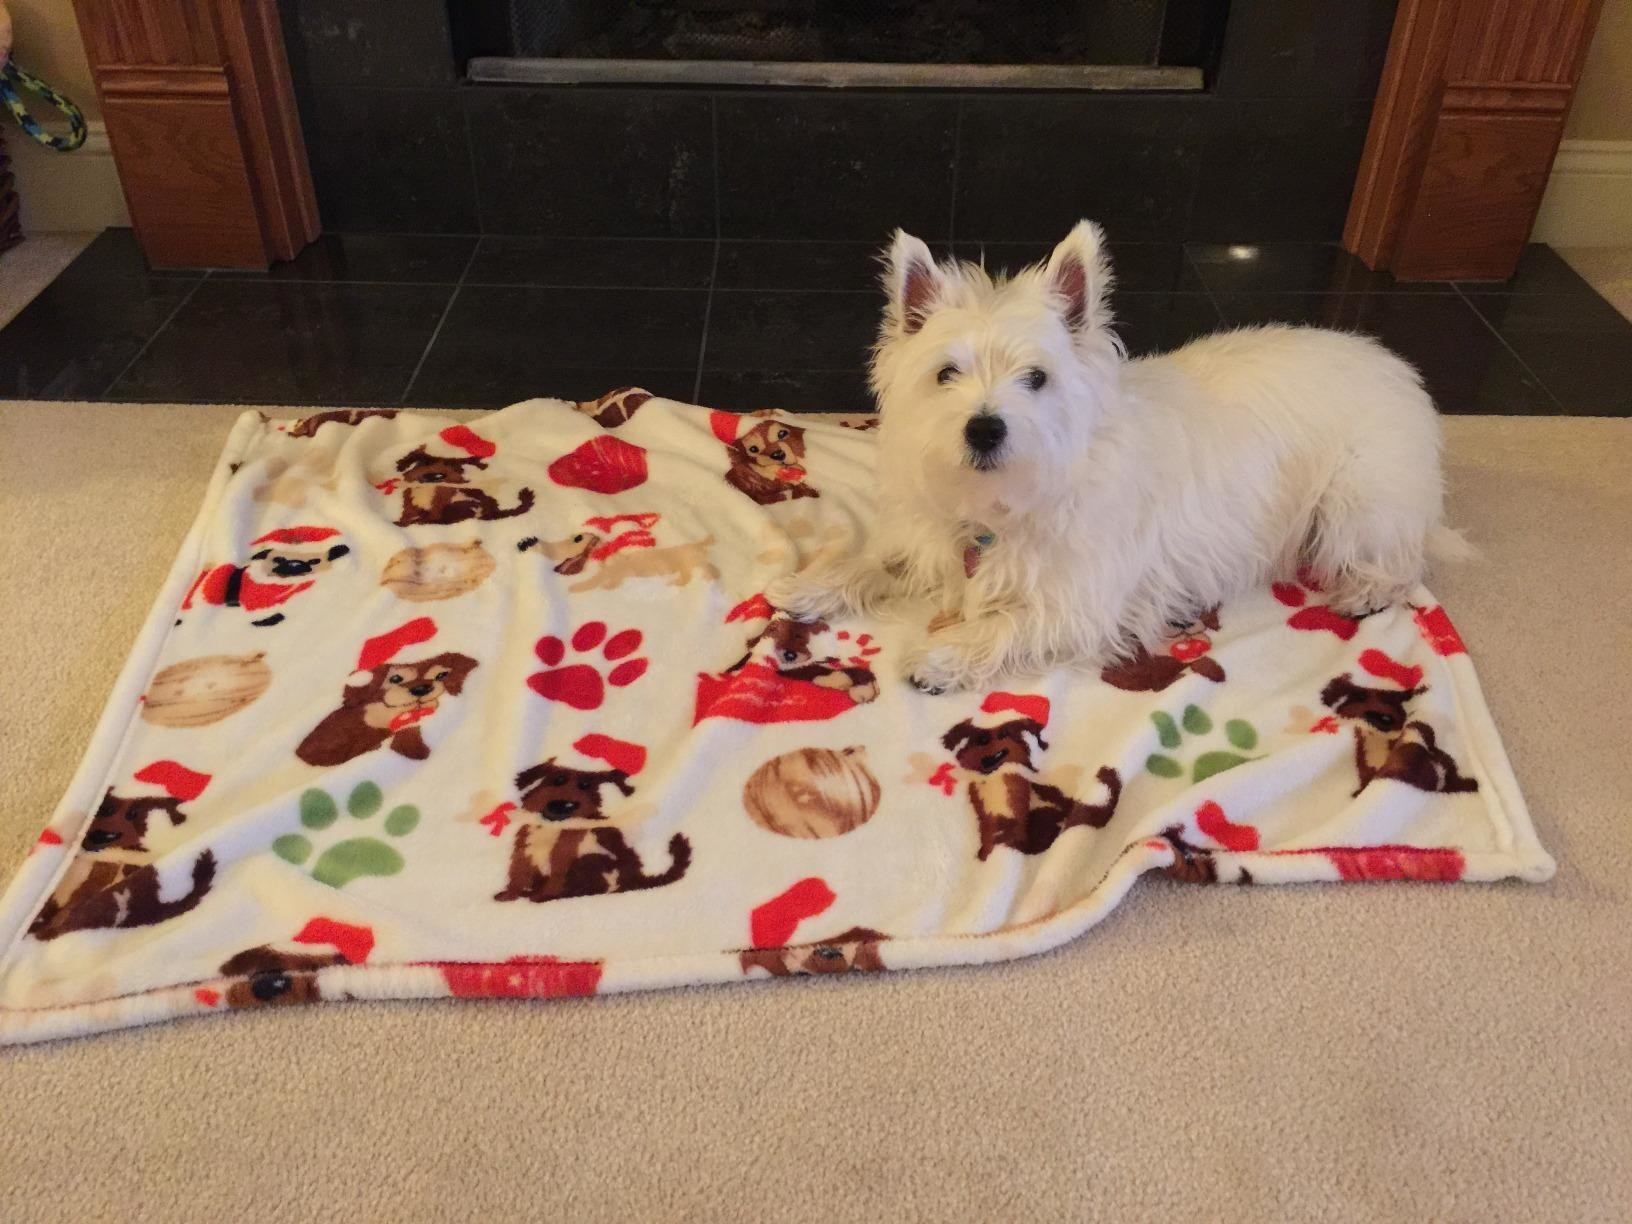 The blanket, which is white with a pattern of puppies in Santa hats